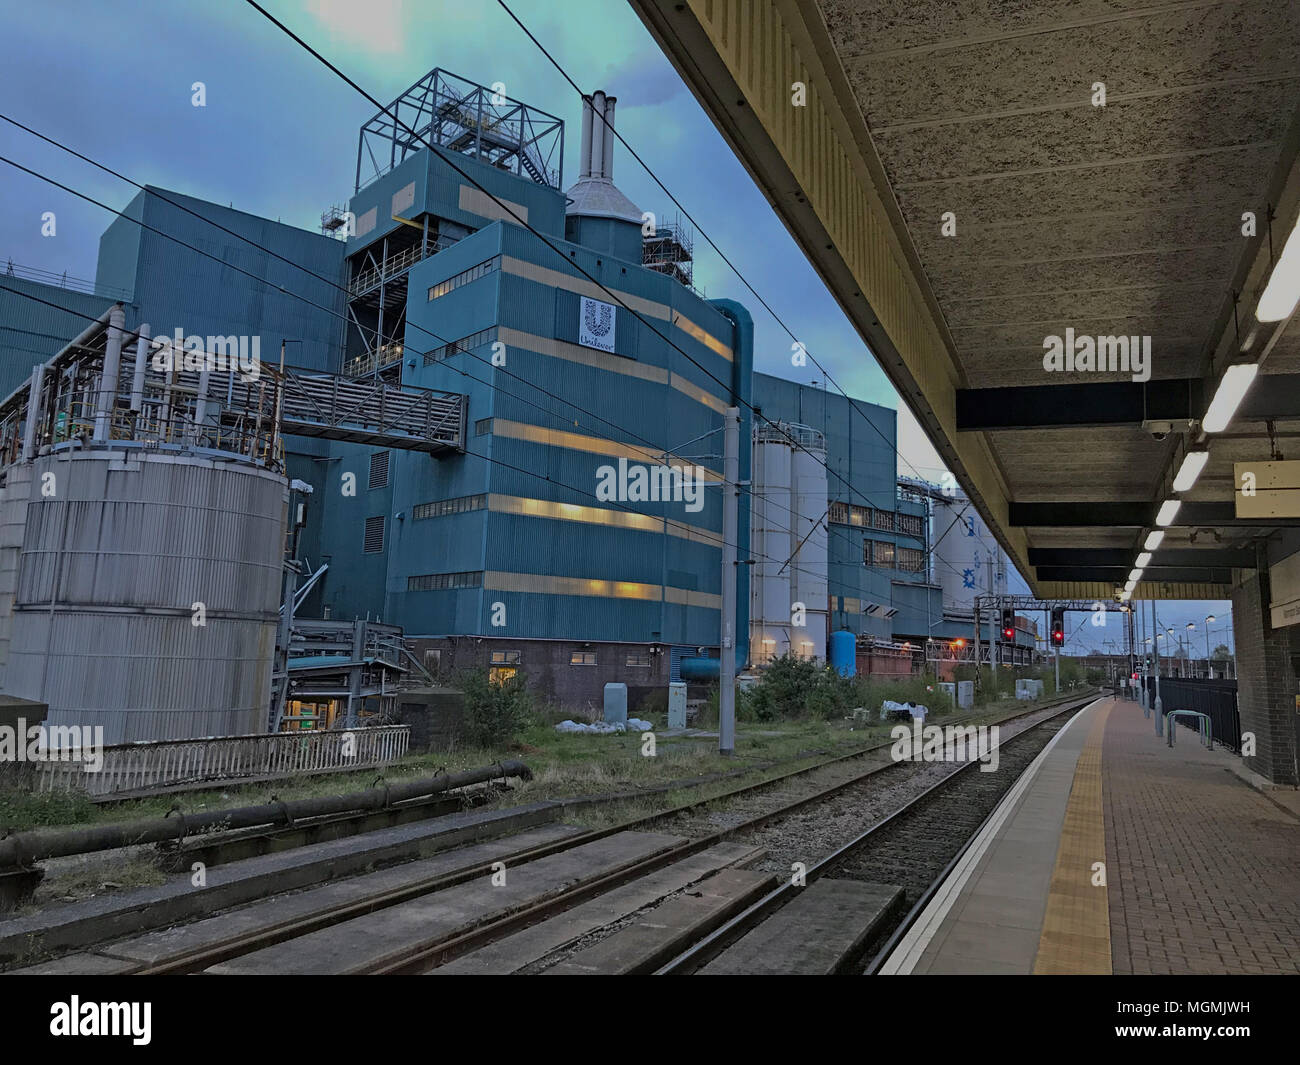 Unilever Persil plant at Warrington Bank Quay - Stock Image